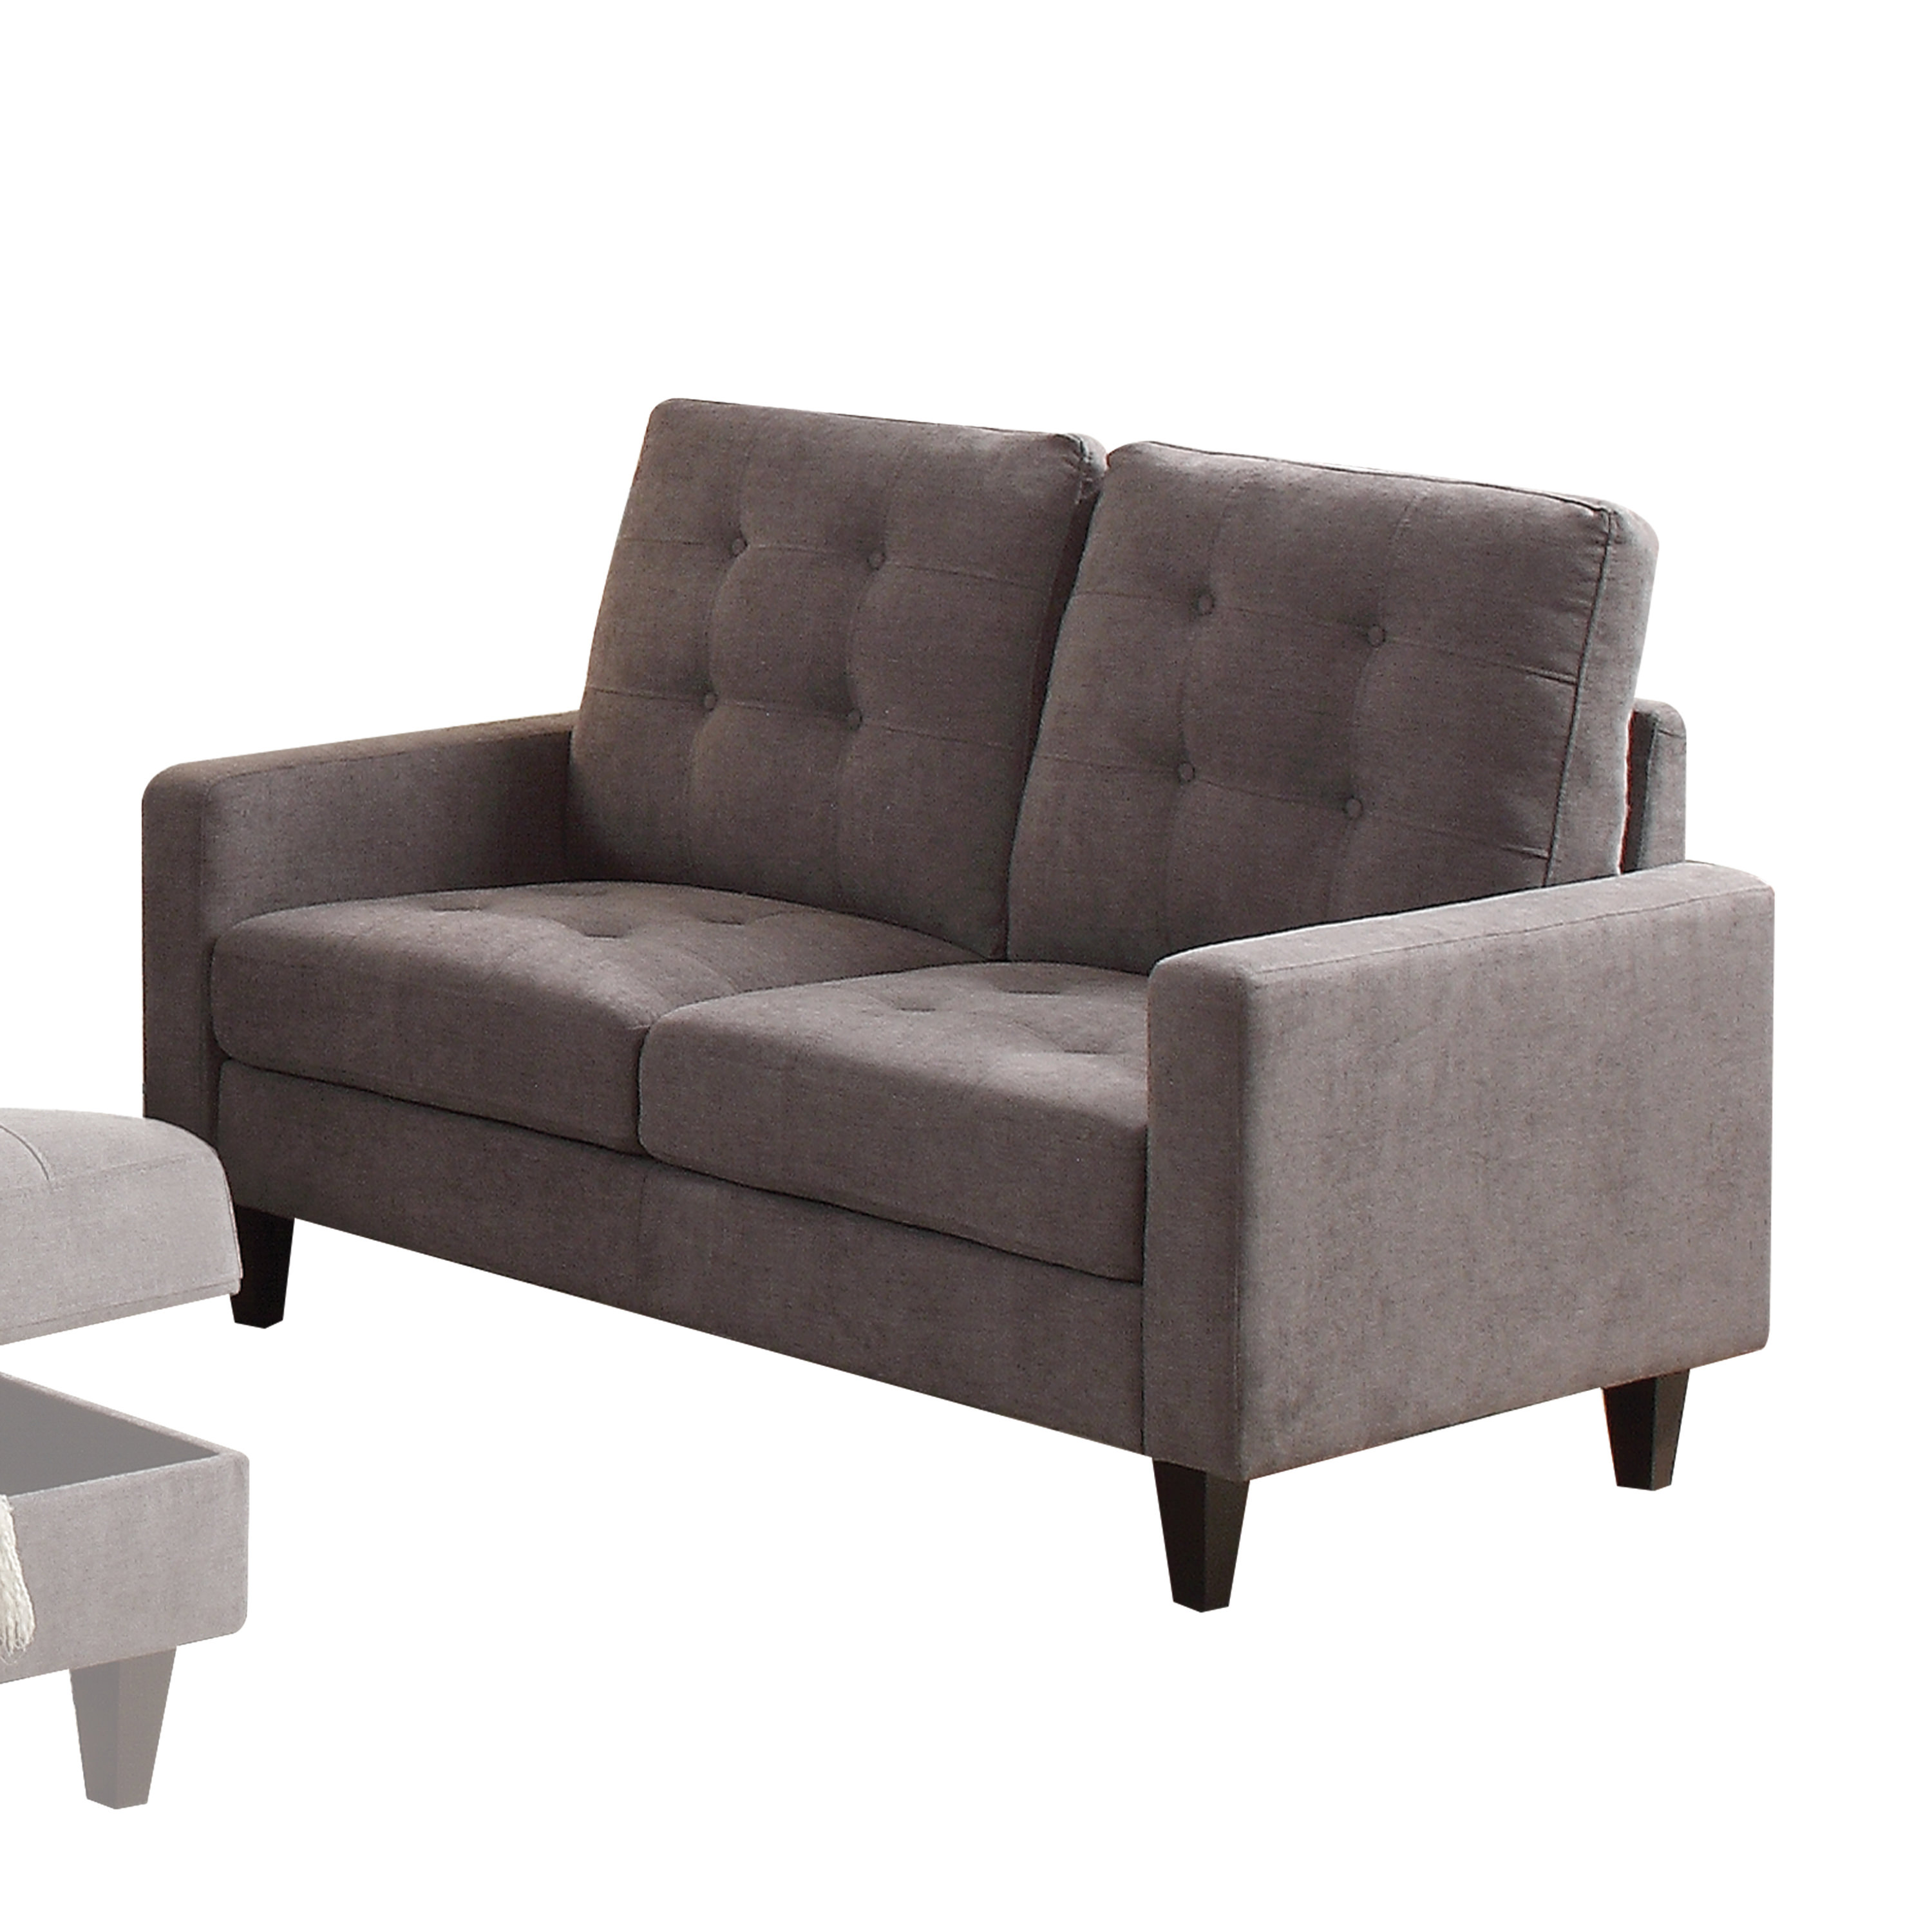 Acme Nate Memory Foam Loveseat with Tufting in Gray Fabric